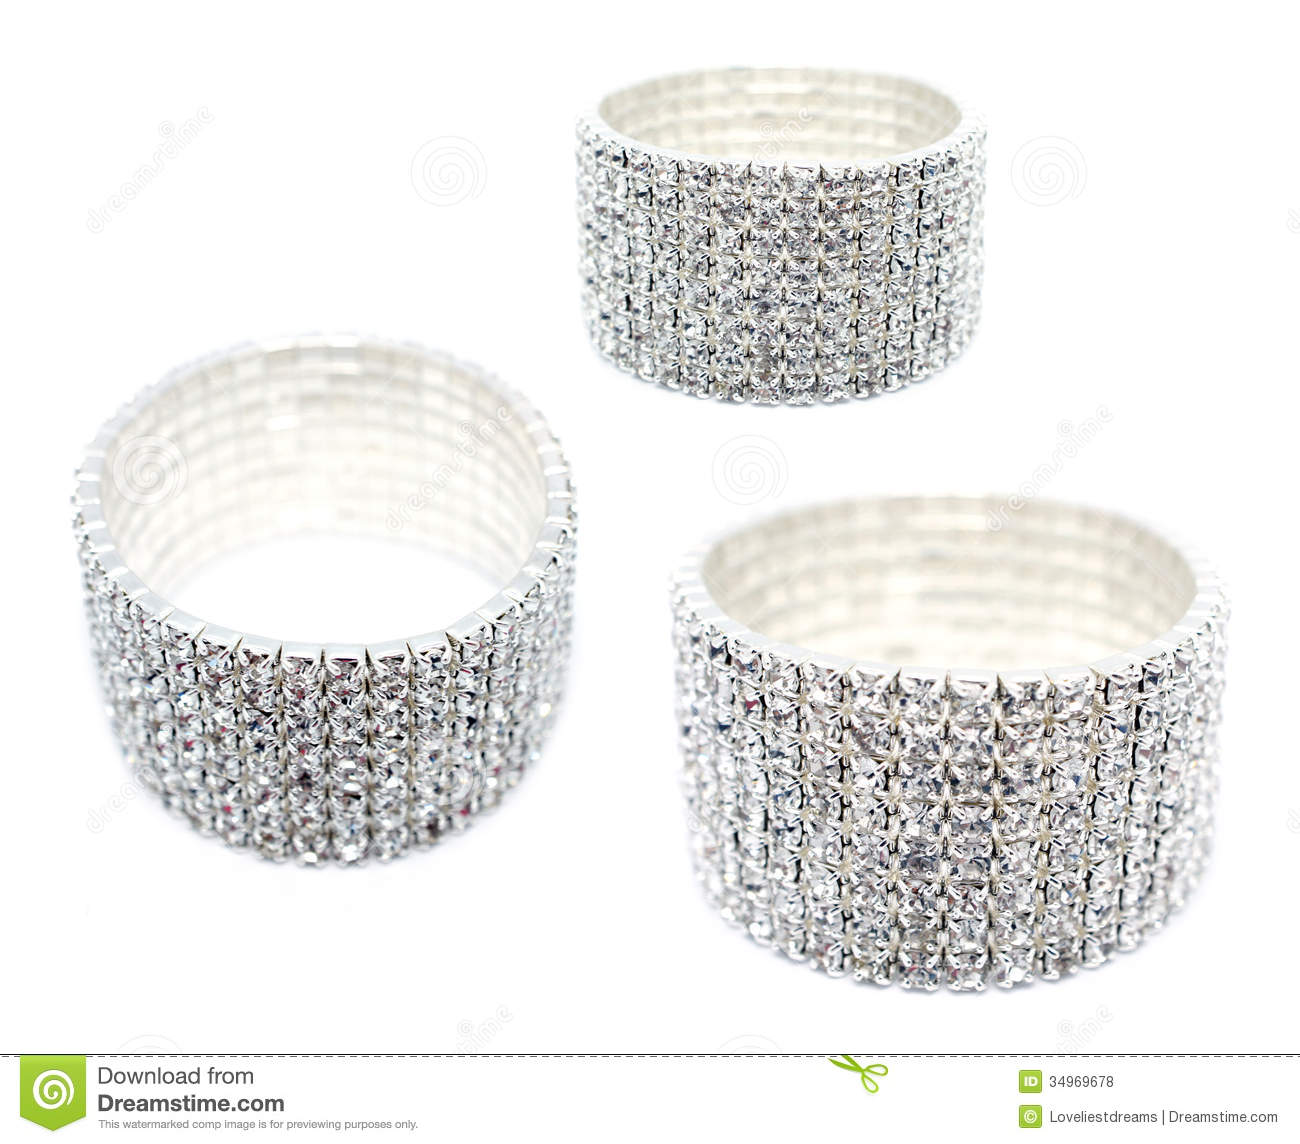 8 row rhinestone cuff bracelet stock photo image of glitter cubic